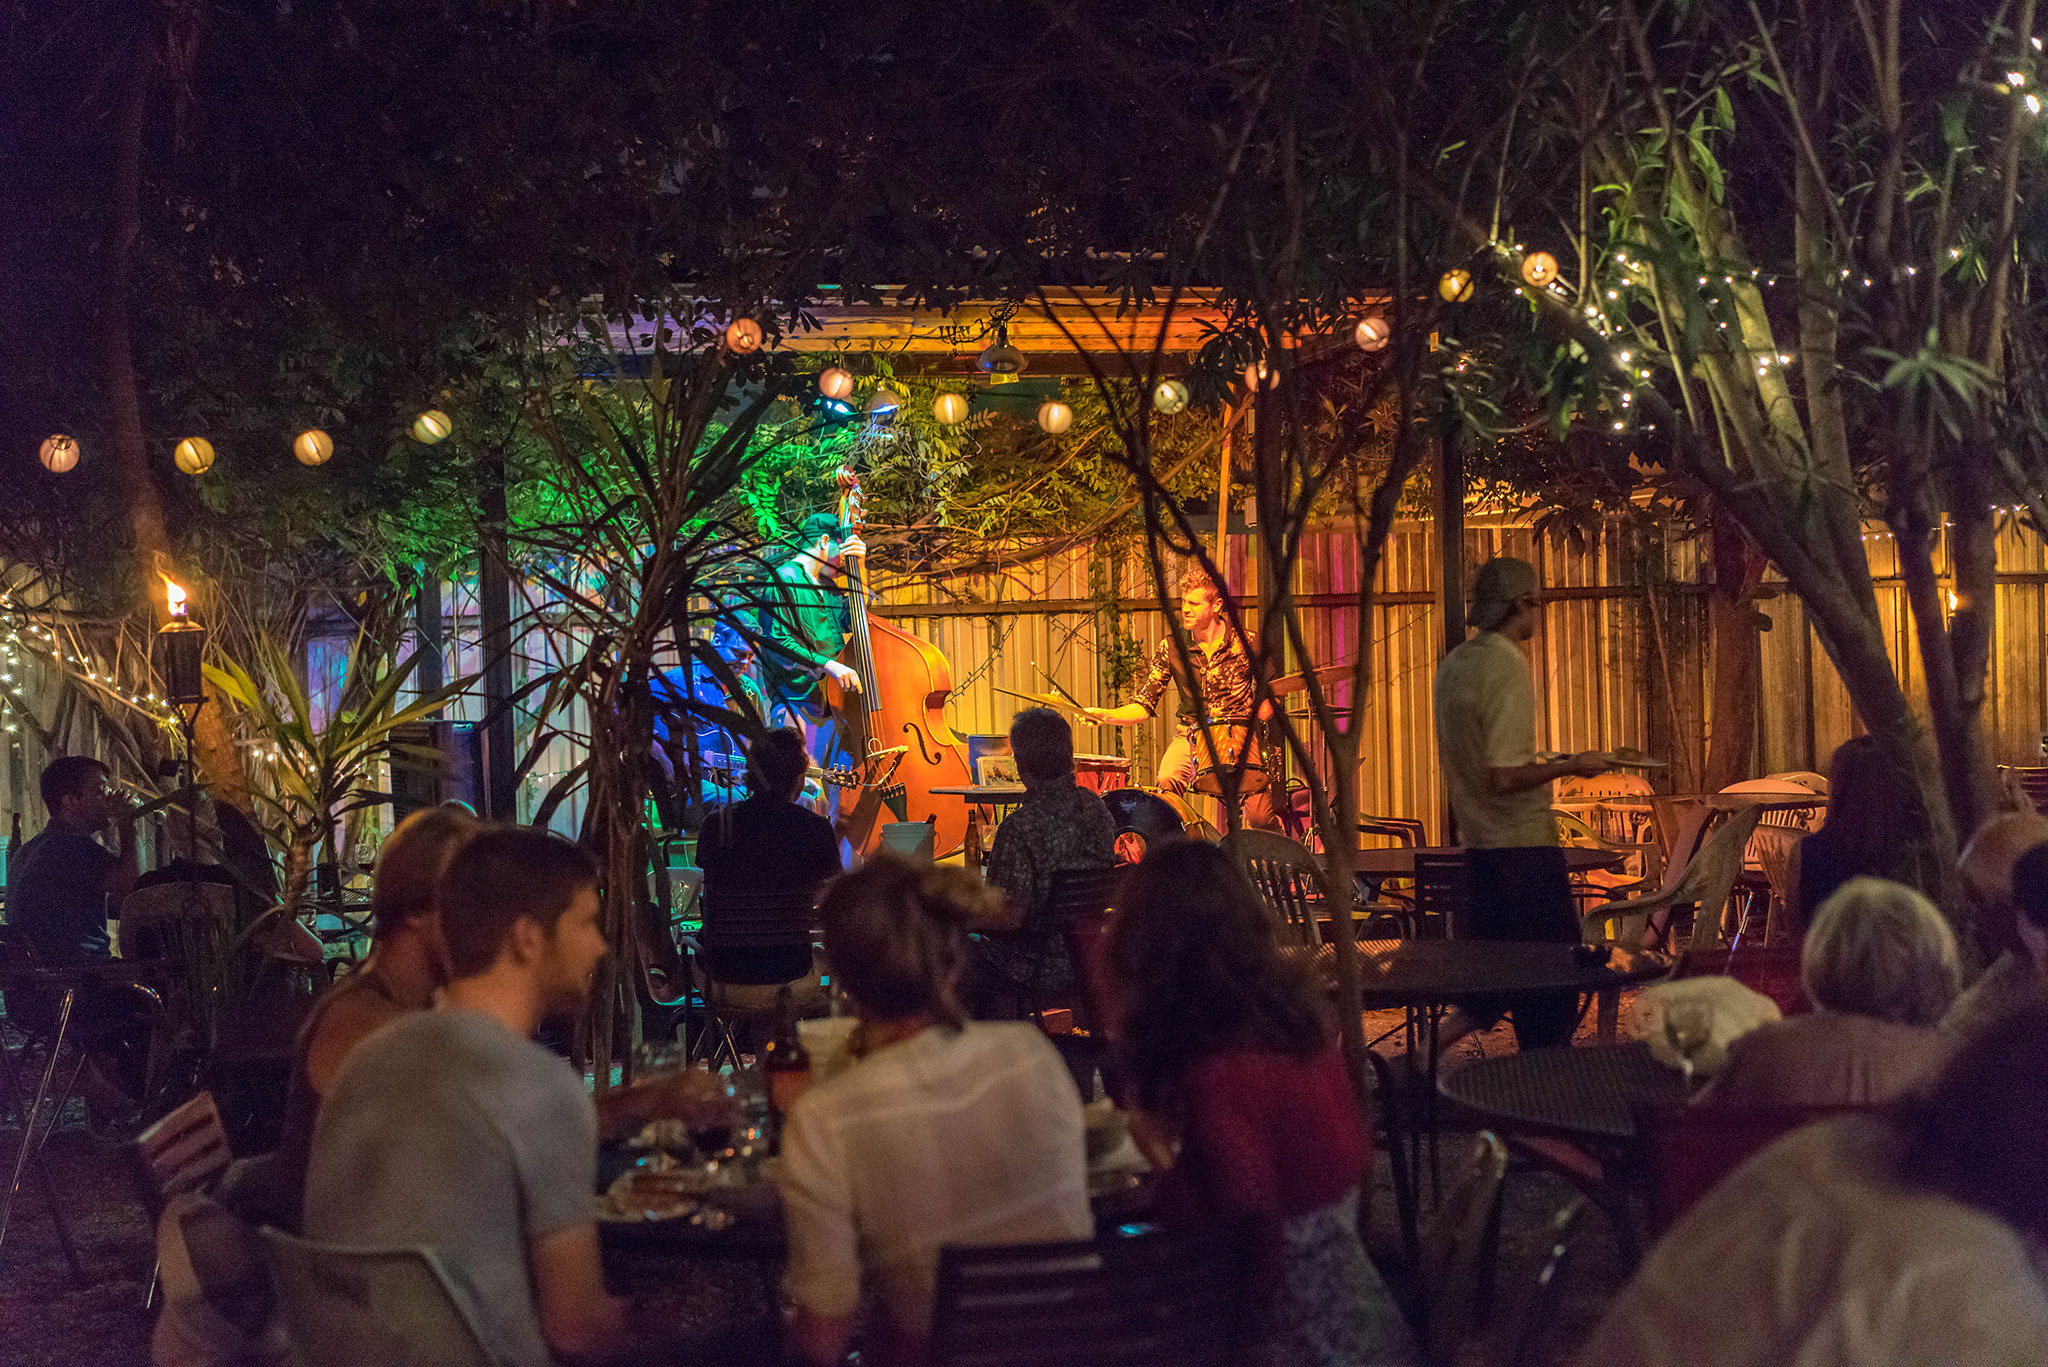 Bacchanal is a magical spot for a glass of wine. (Photo: Paul Broussard)